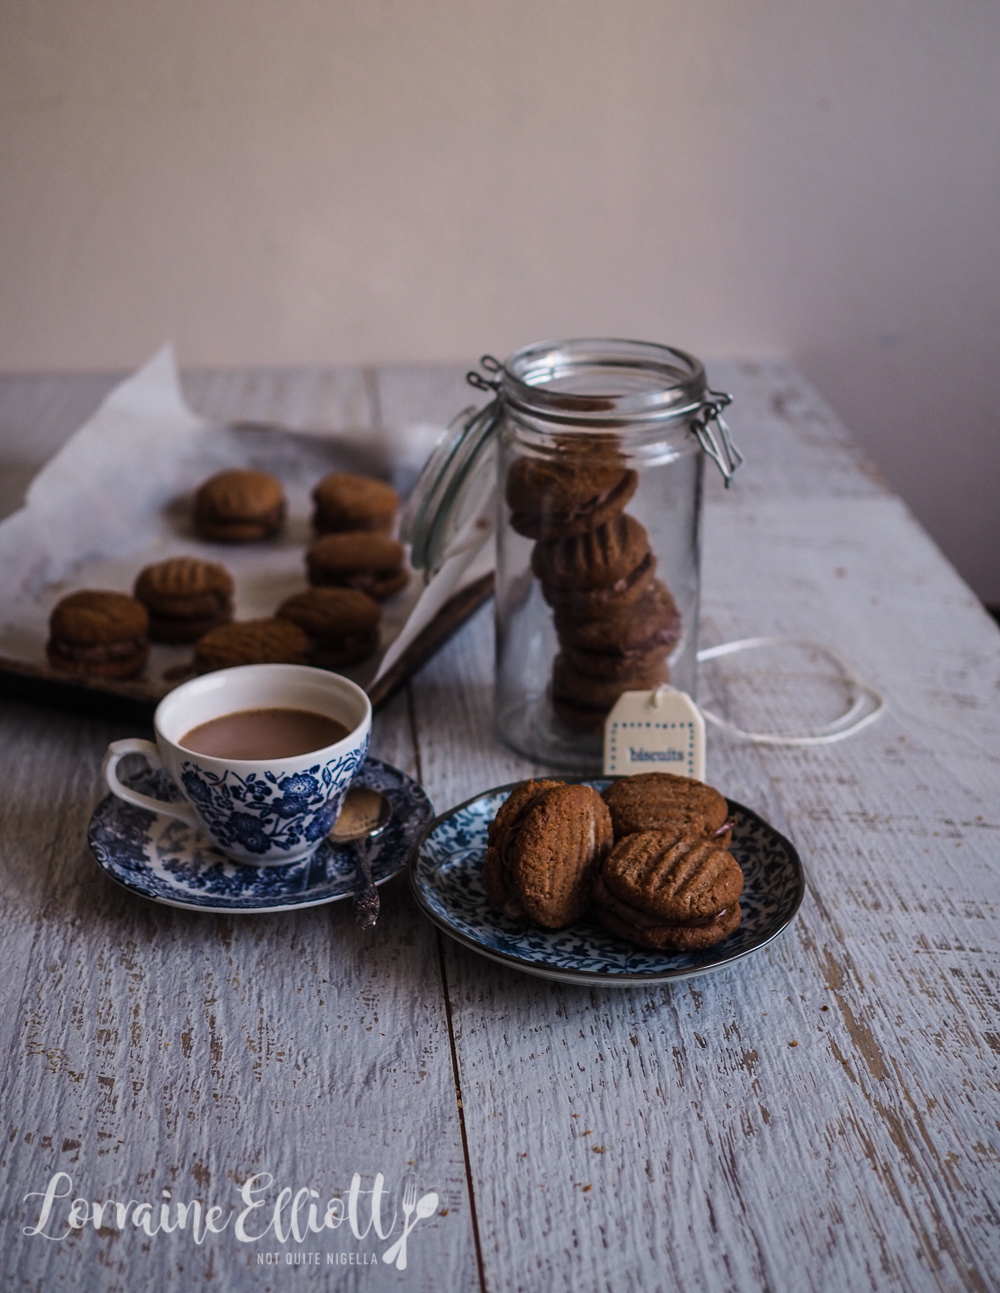 Romany Creams recipe